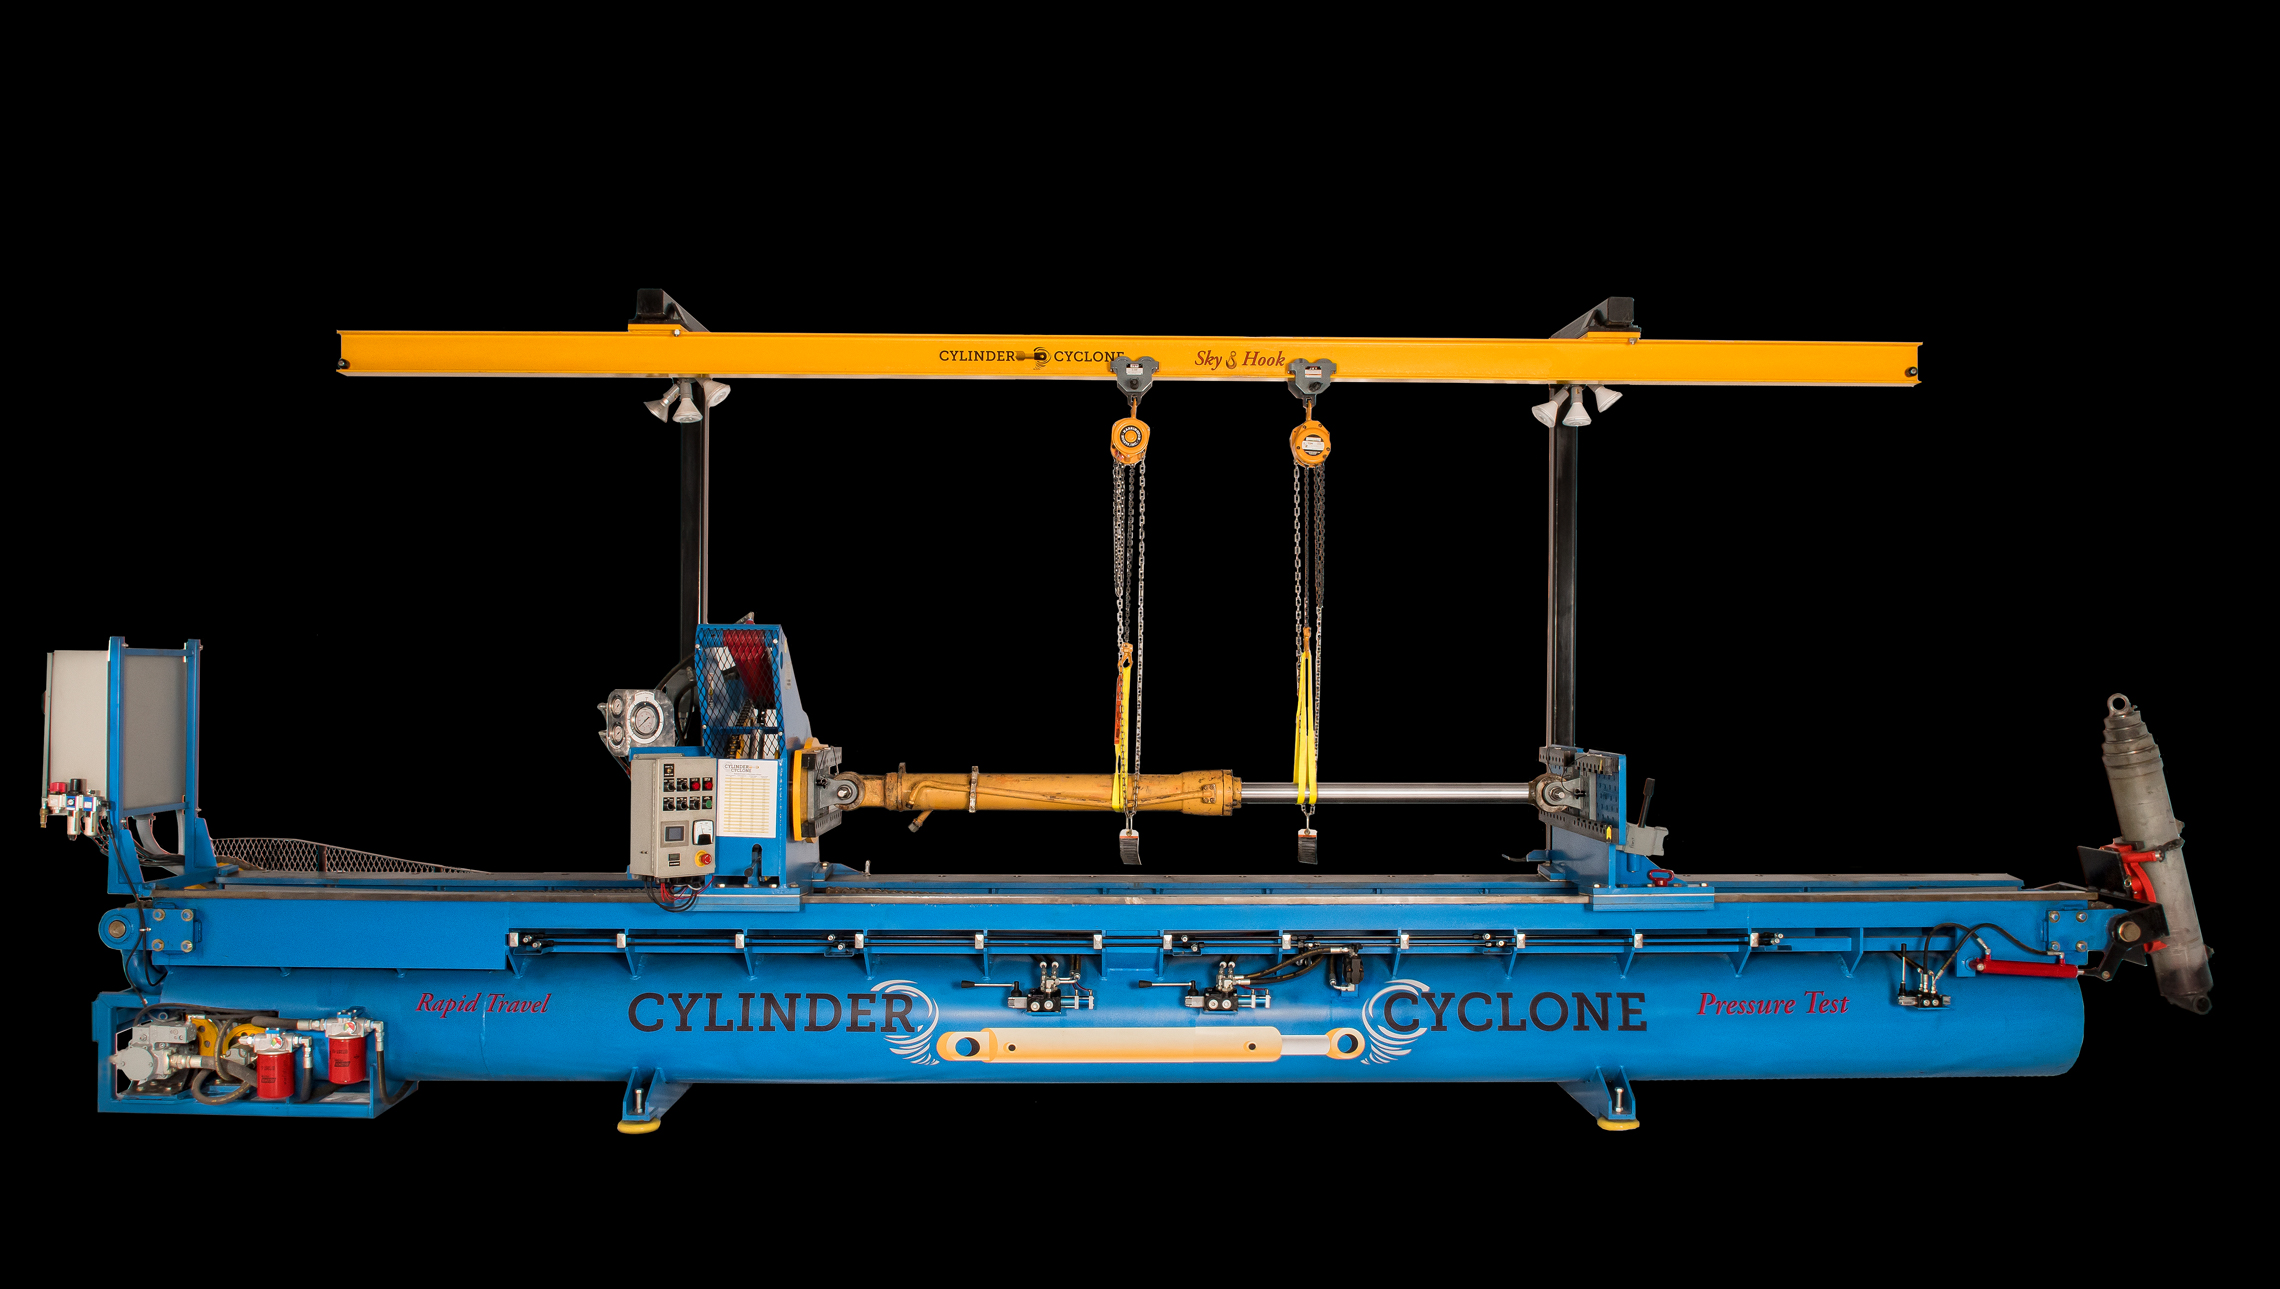 Cylinder Cyclone Specialized Hydraulic Repair Machine